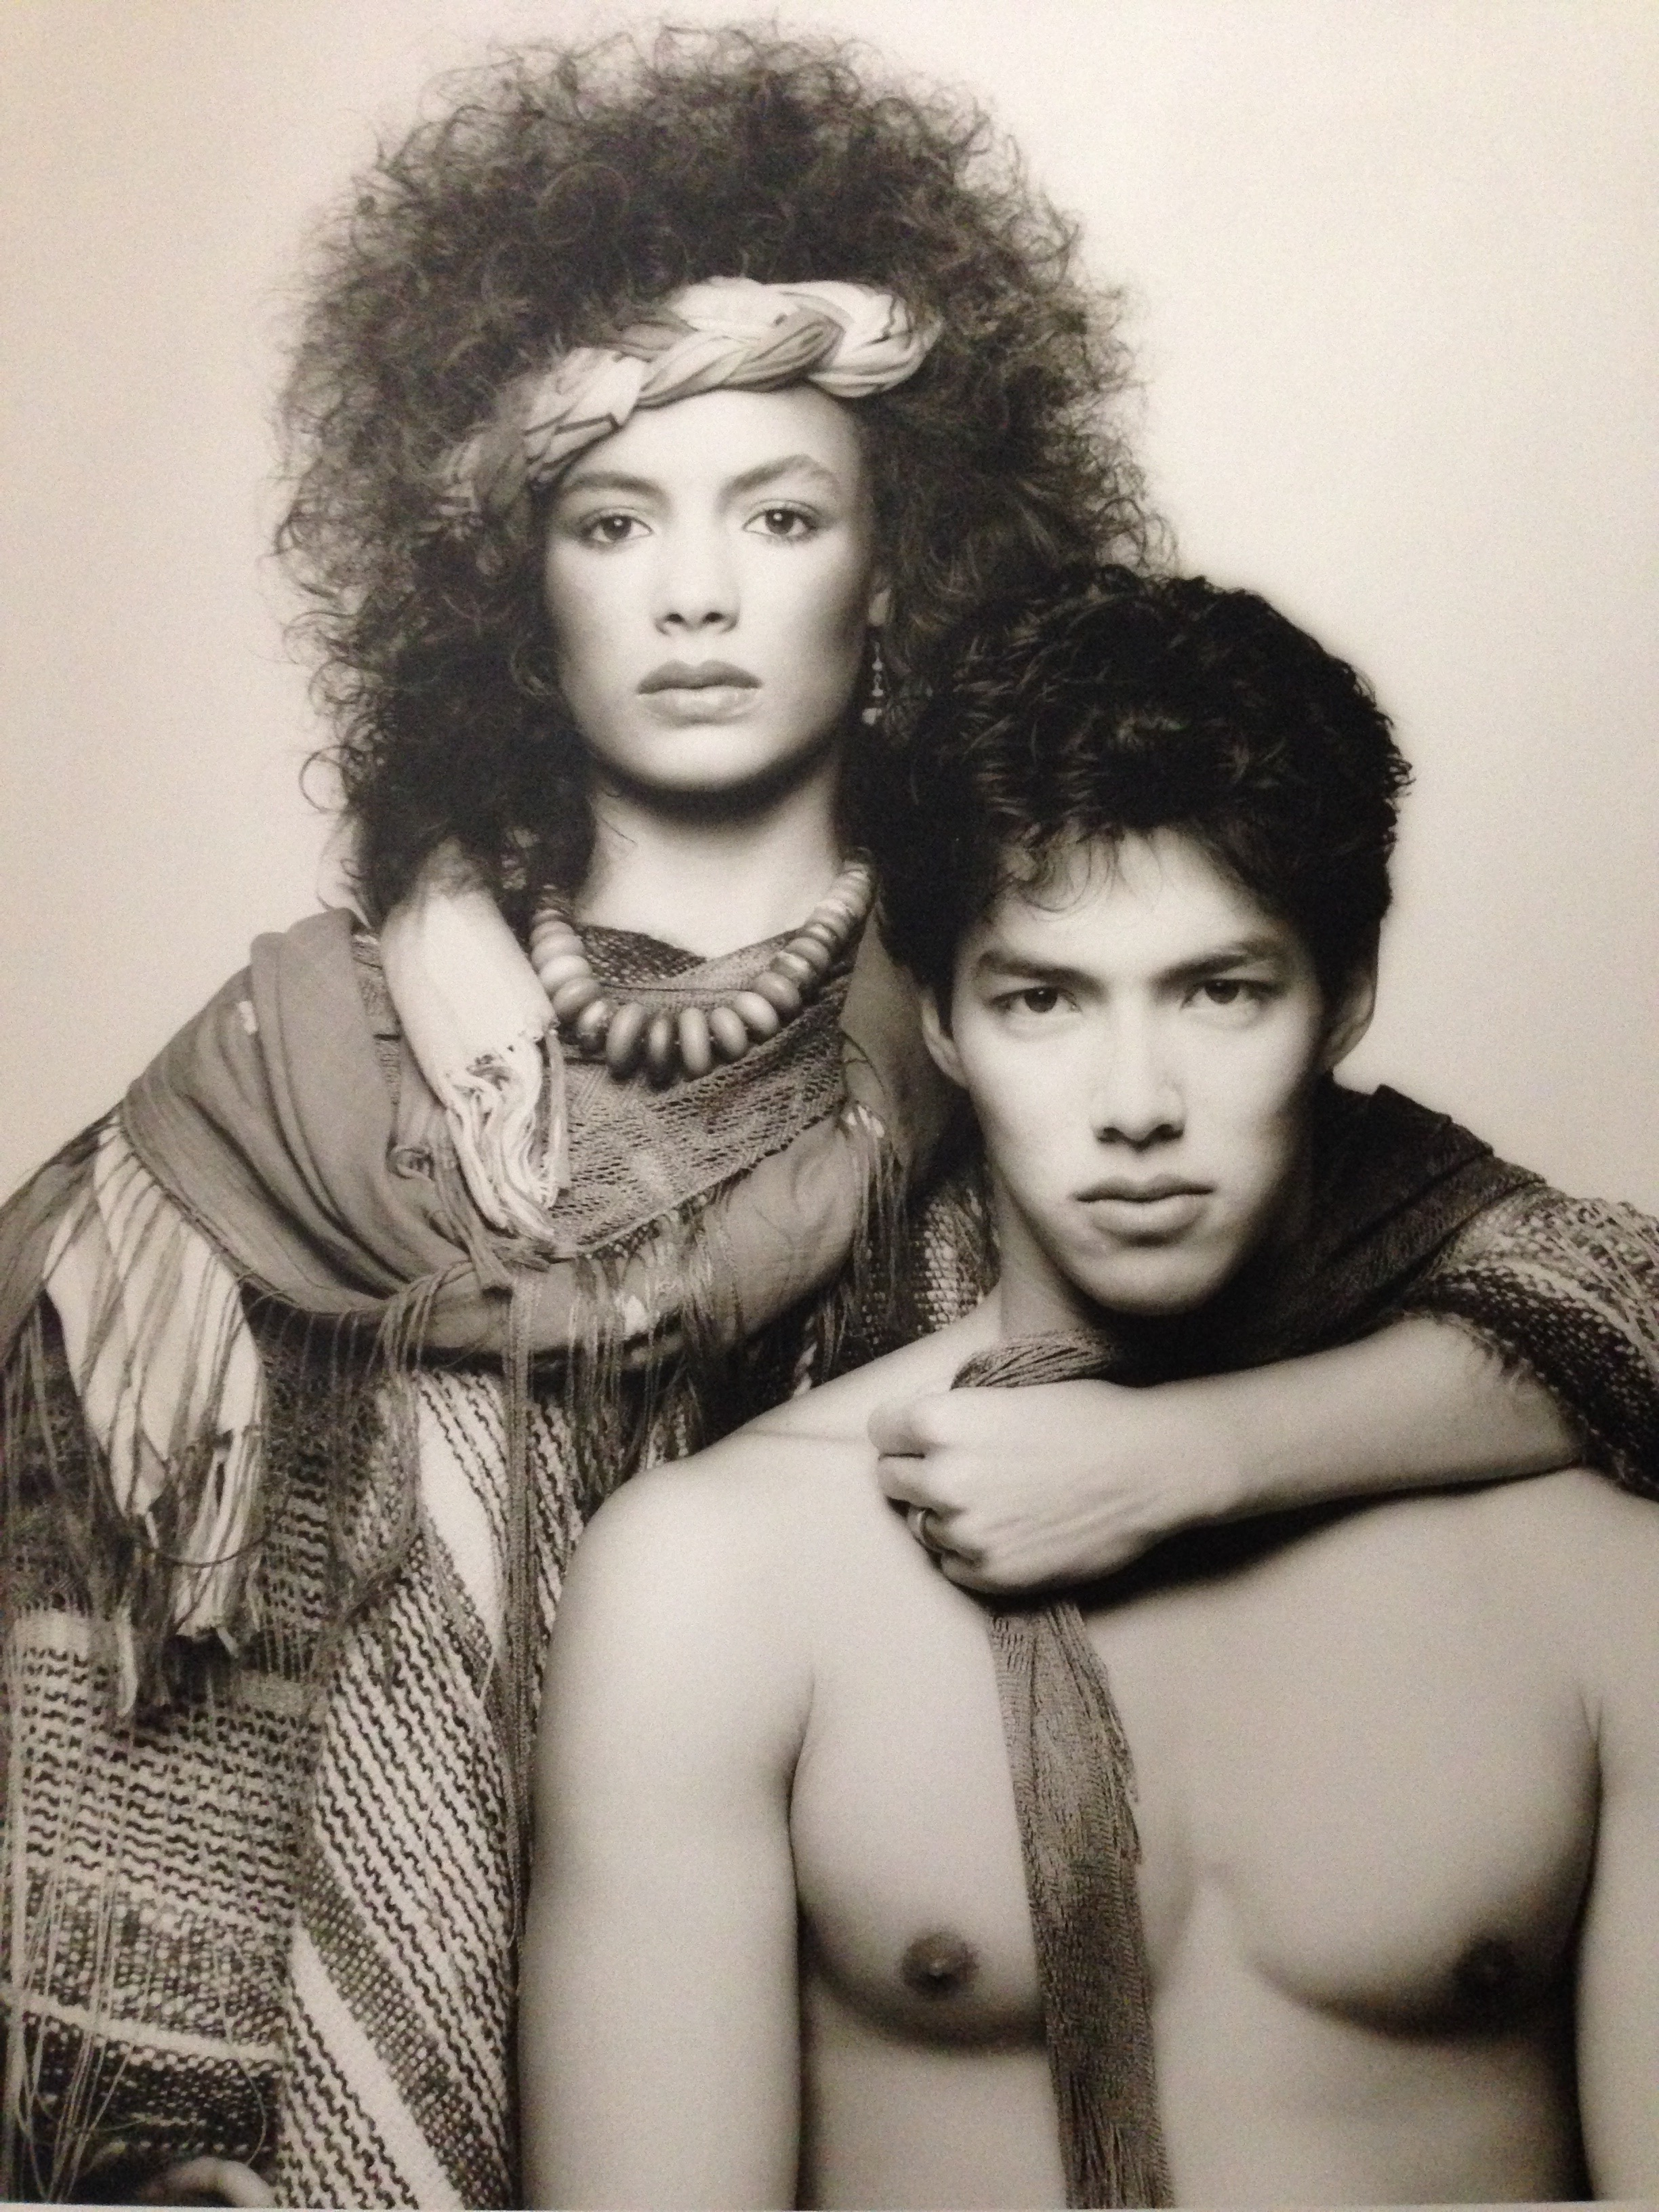 With my dear sweet friend actor/artist Russell Wong